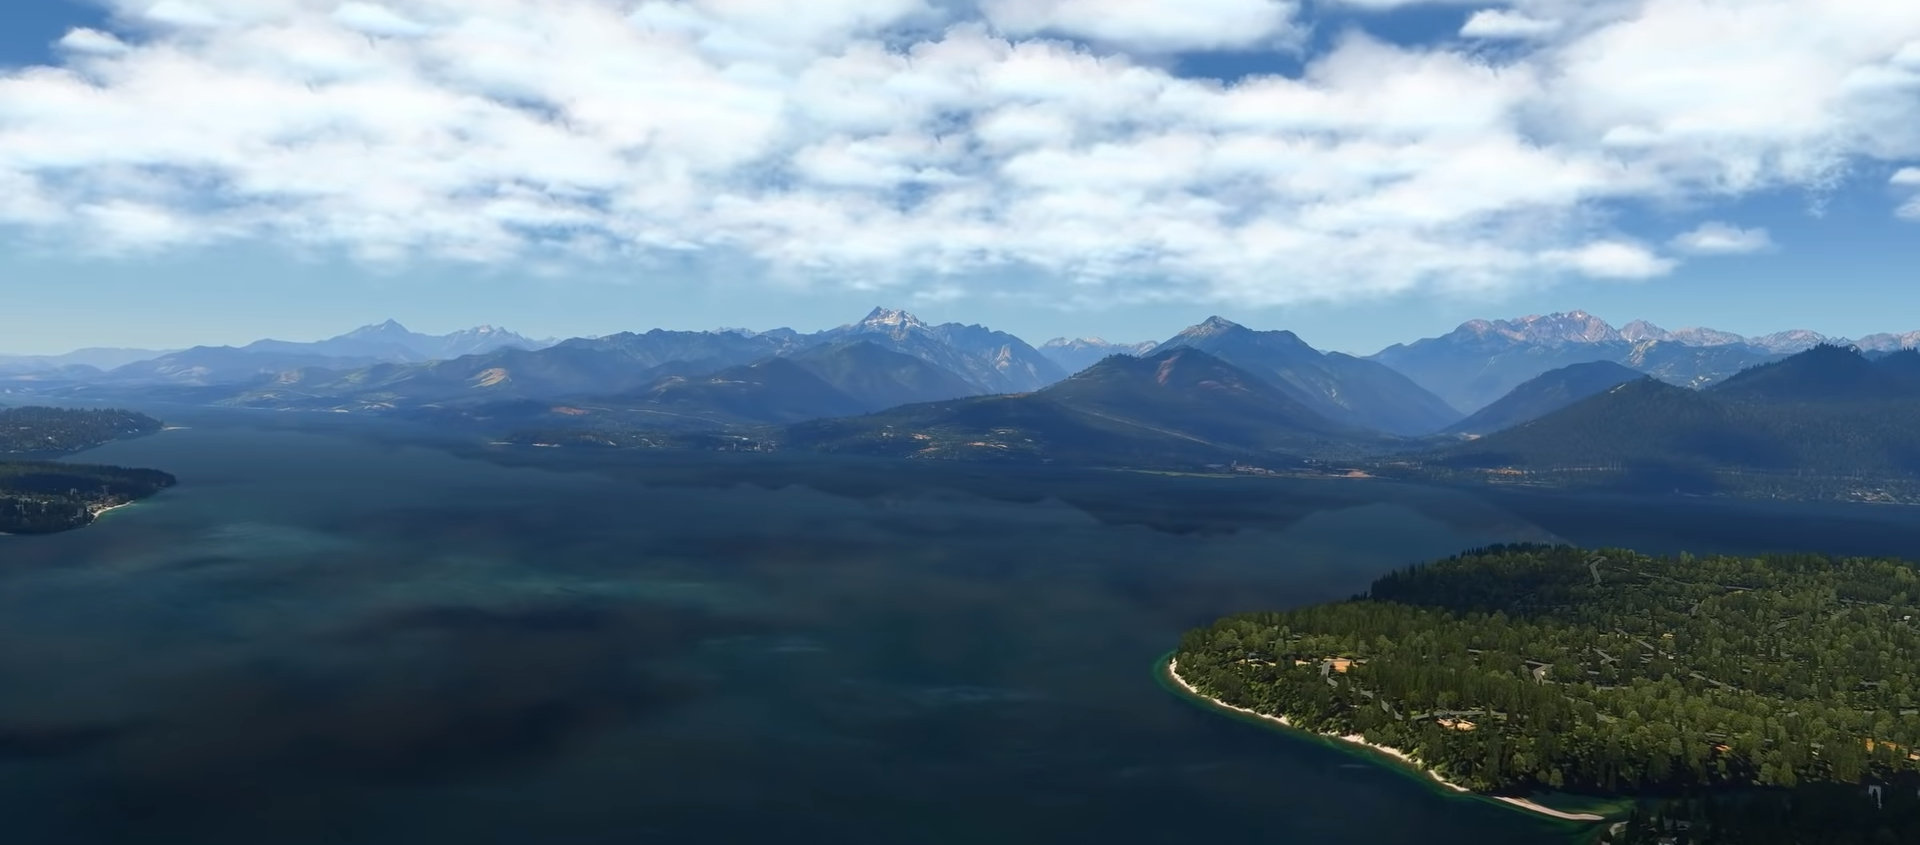 Orbx TrueEarth USA Washington X-Plane 11 Preview